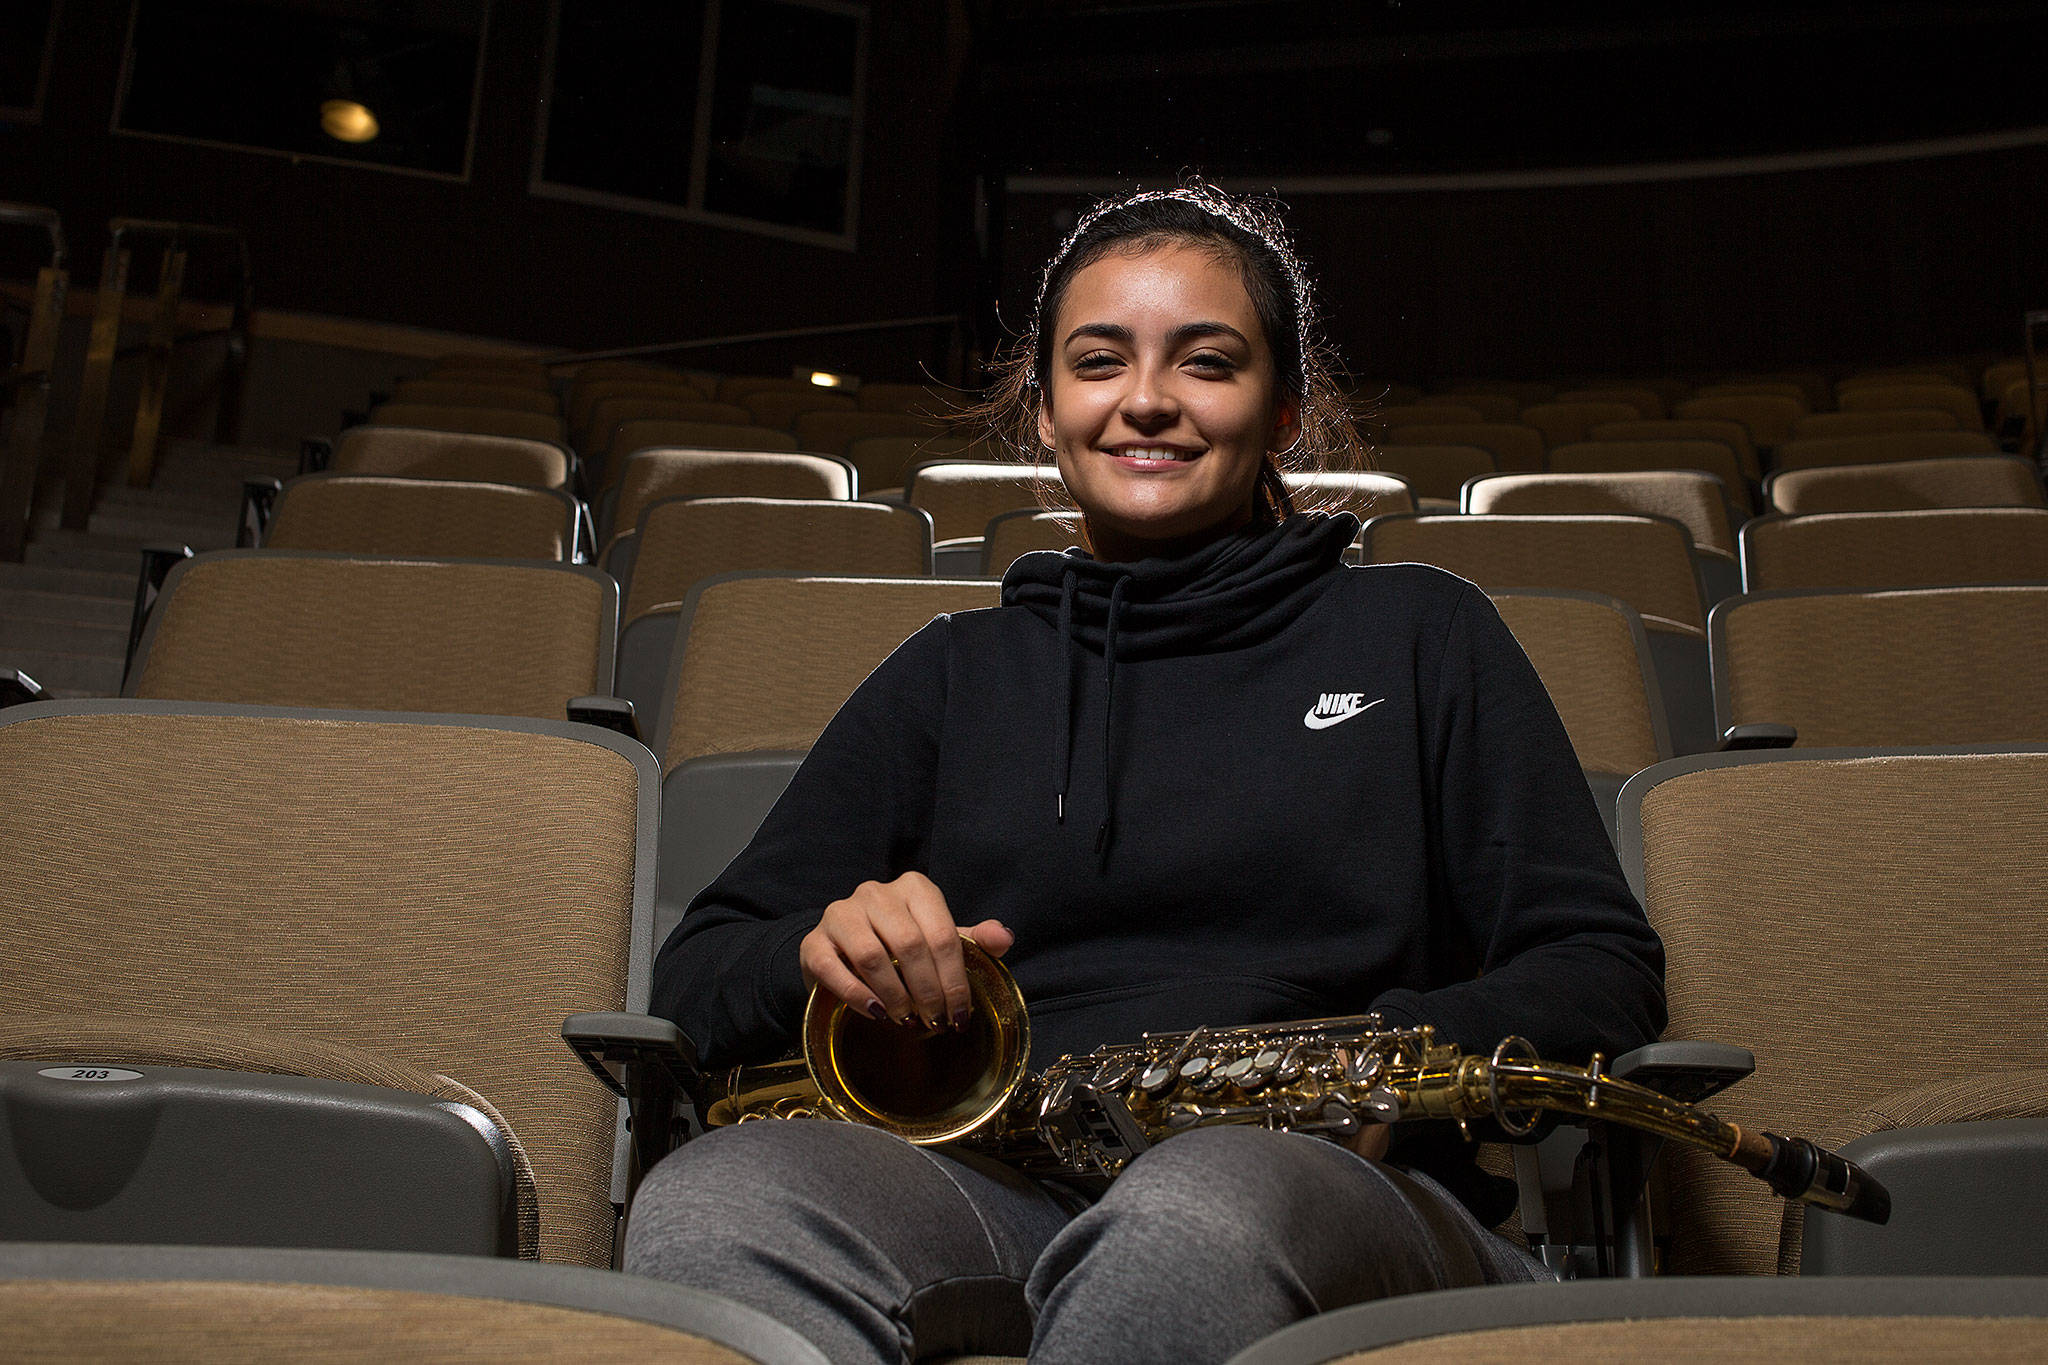 Lynnwood High School senior Venecia Lucio sits with her saxophone in school's theater Nov. 8. Lucio has led fundraisers as part of her work with Colores Unidos, which celebrates Latino and Spanish-speaking cultures. (Andy Bronson / The Herald)